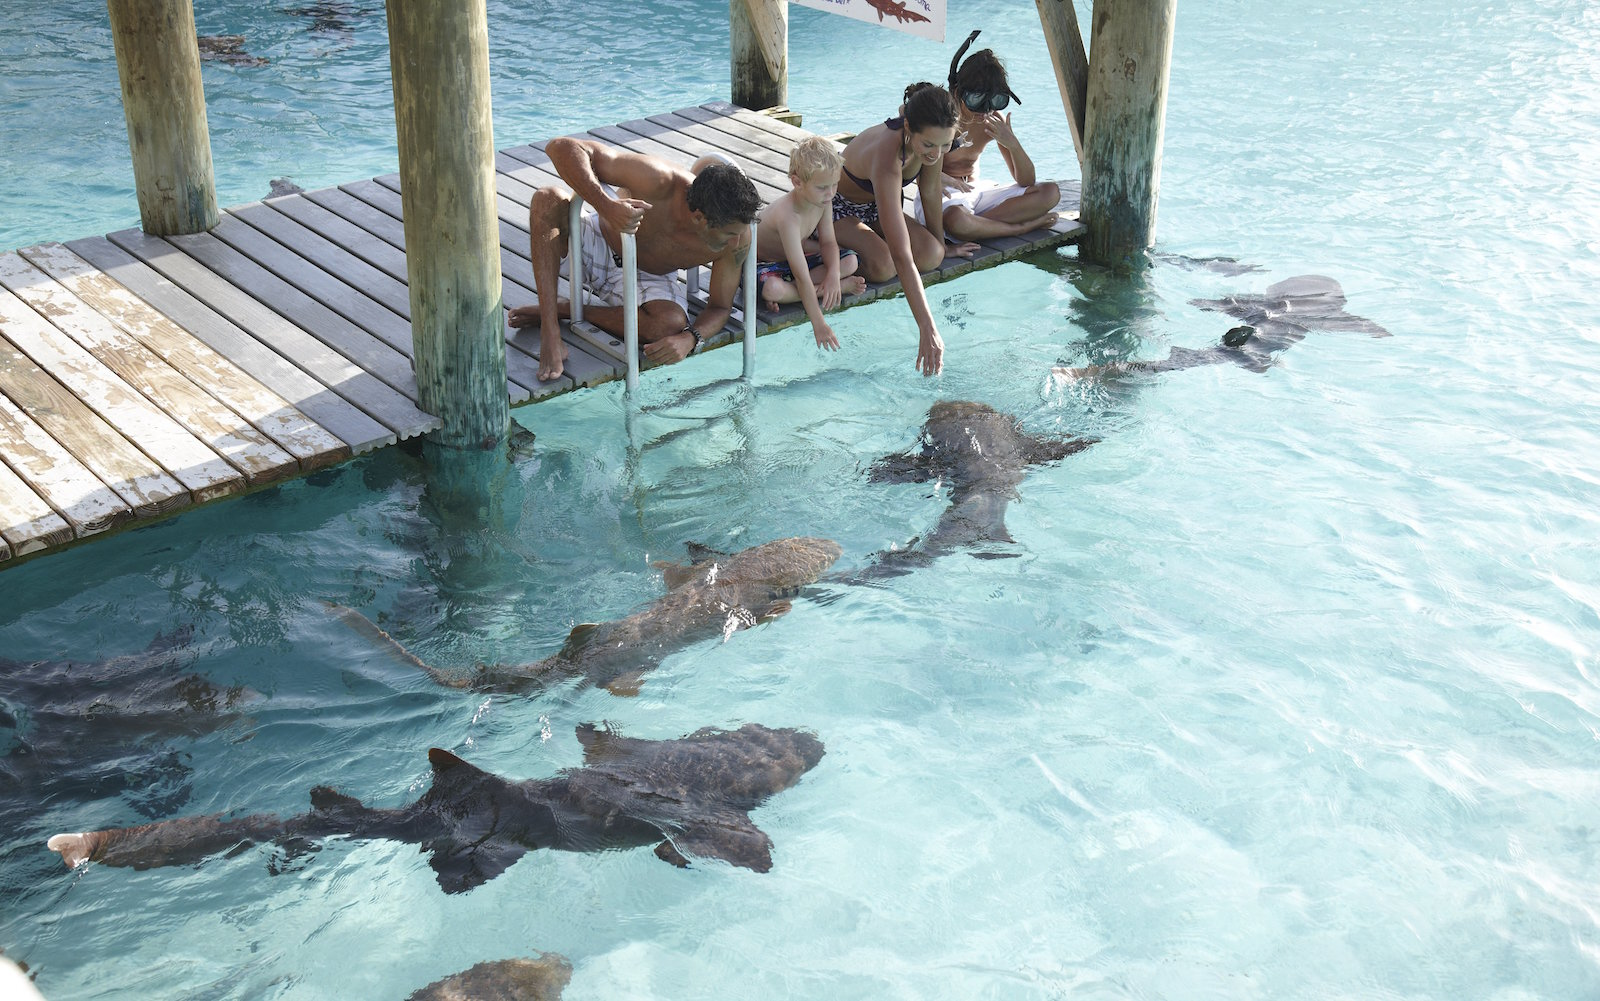 Kids pet nurse sharks at Compass Cay in Exumas, Bahamas